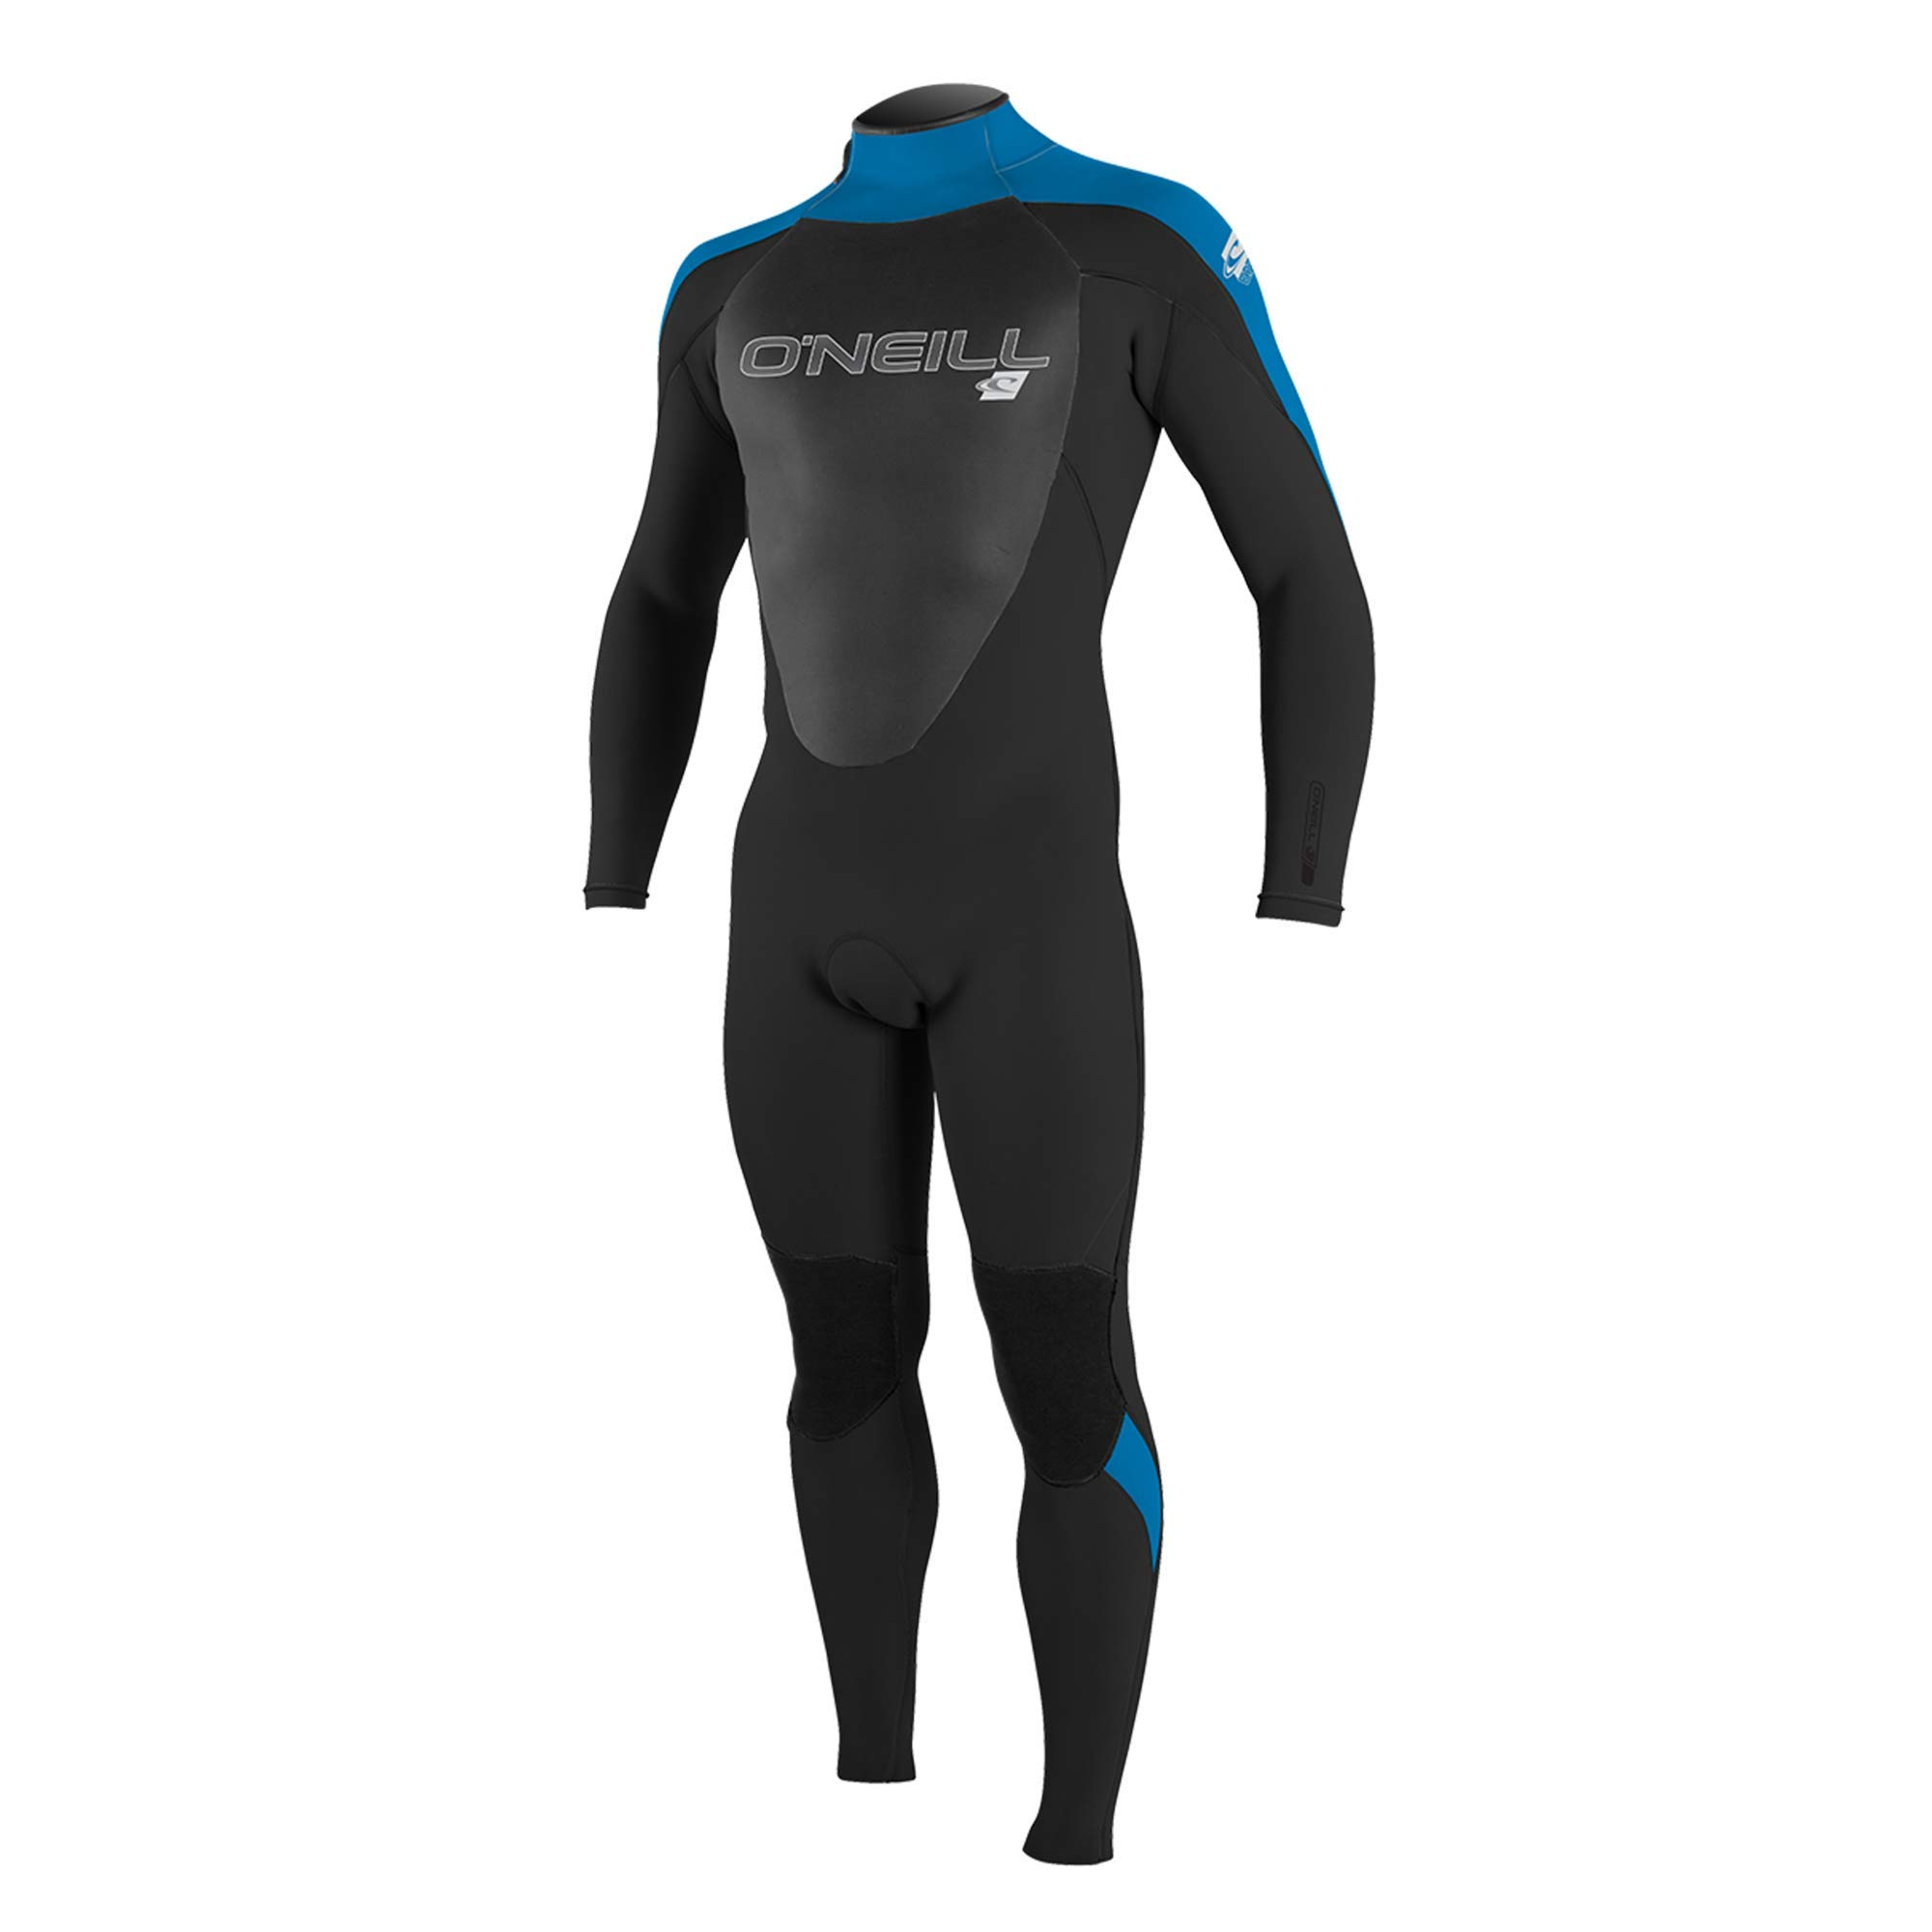 O'Neill  Men's Epic 4/3mm Back Zip Full Wetsuit, Black/BrightBlue,Medium